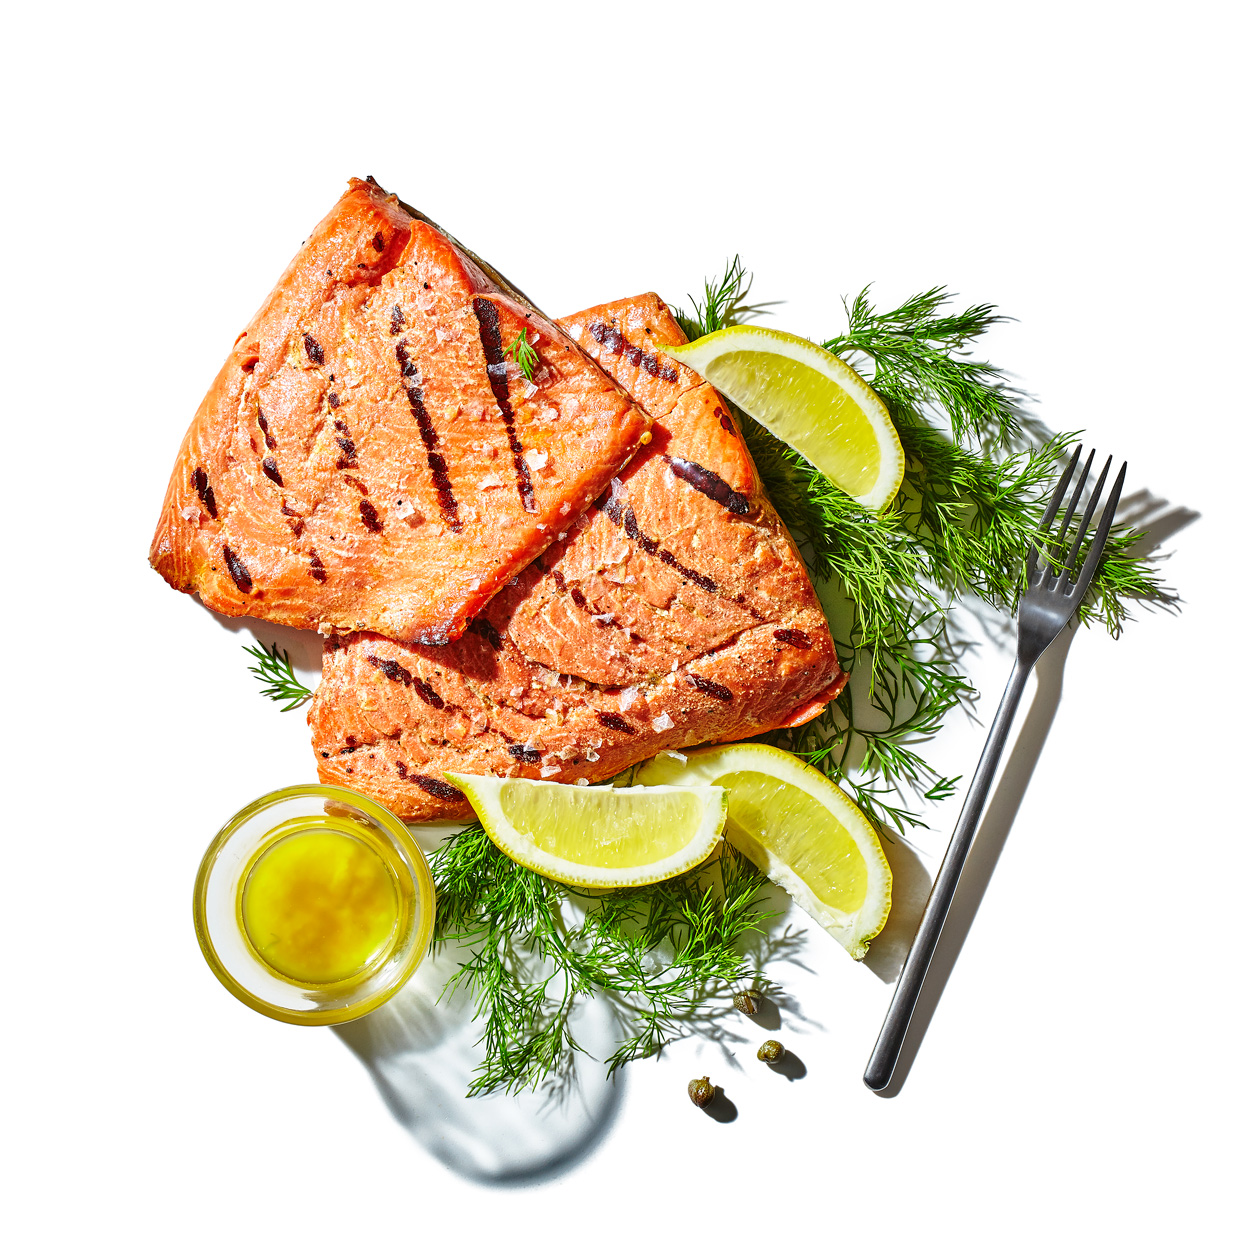 FRESH-MARKET-GRILLING-SALMON-DILL